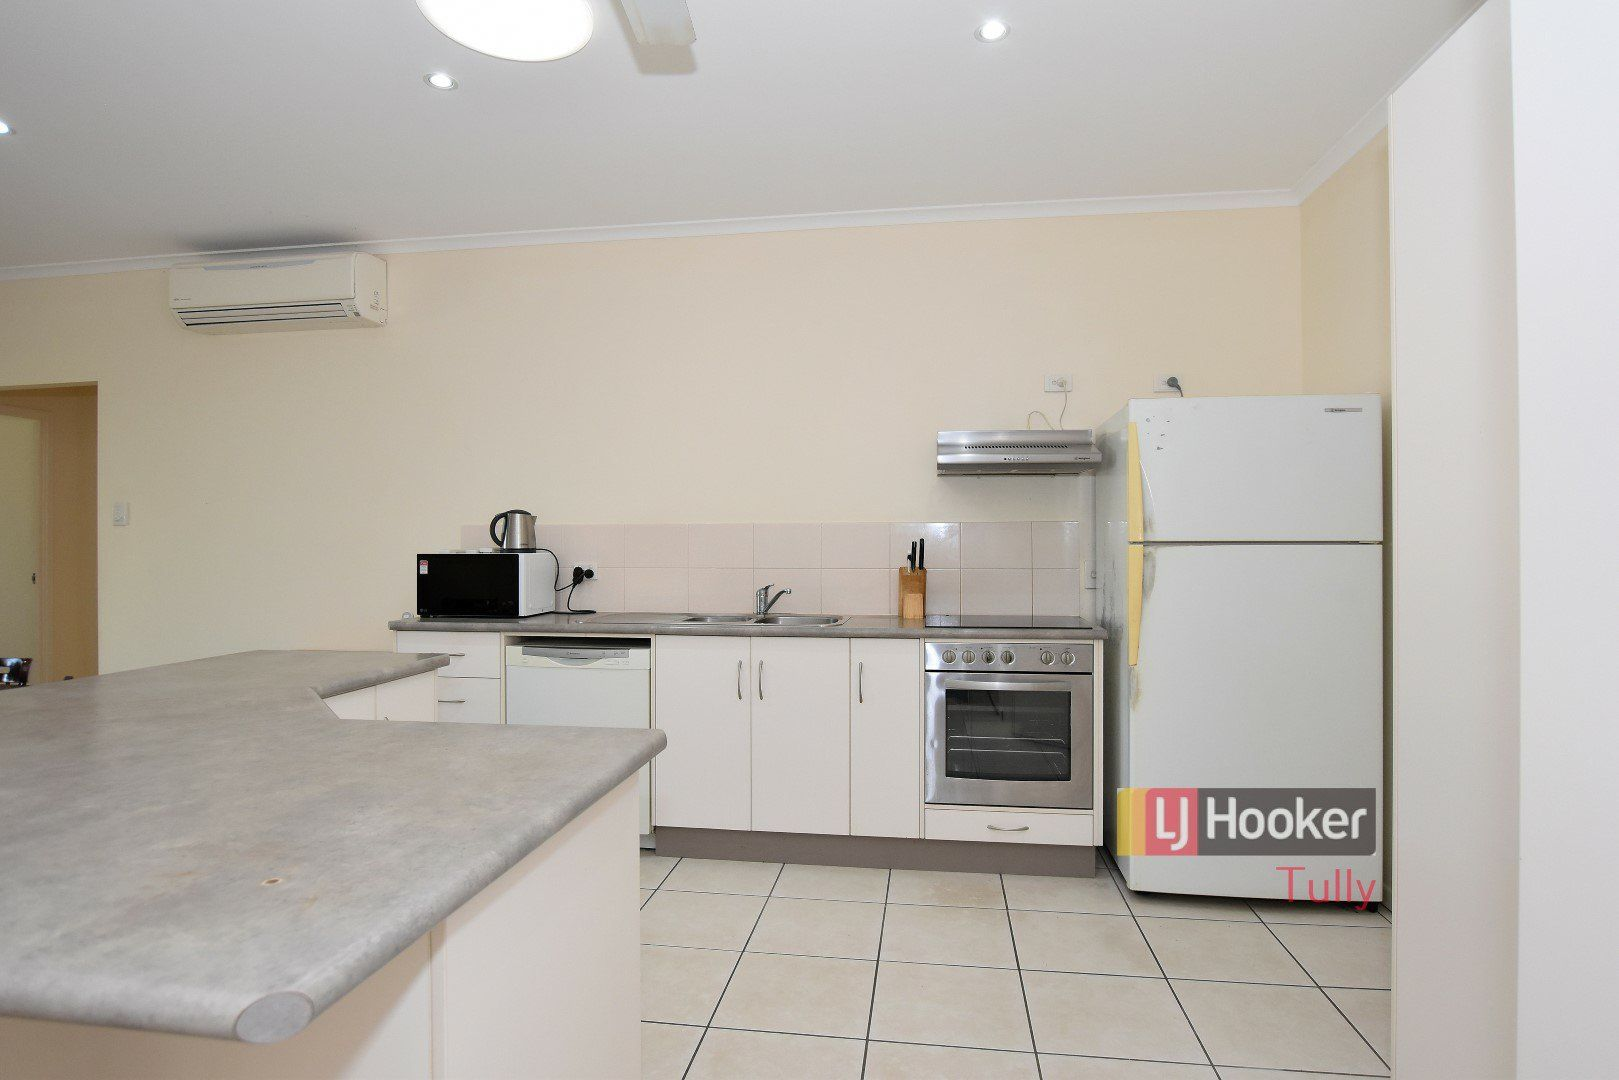 4/11 McQuillen Street, Tully QLD 4854, Image 0